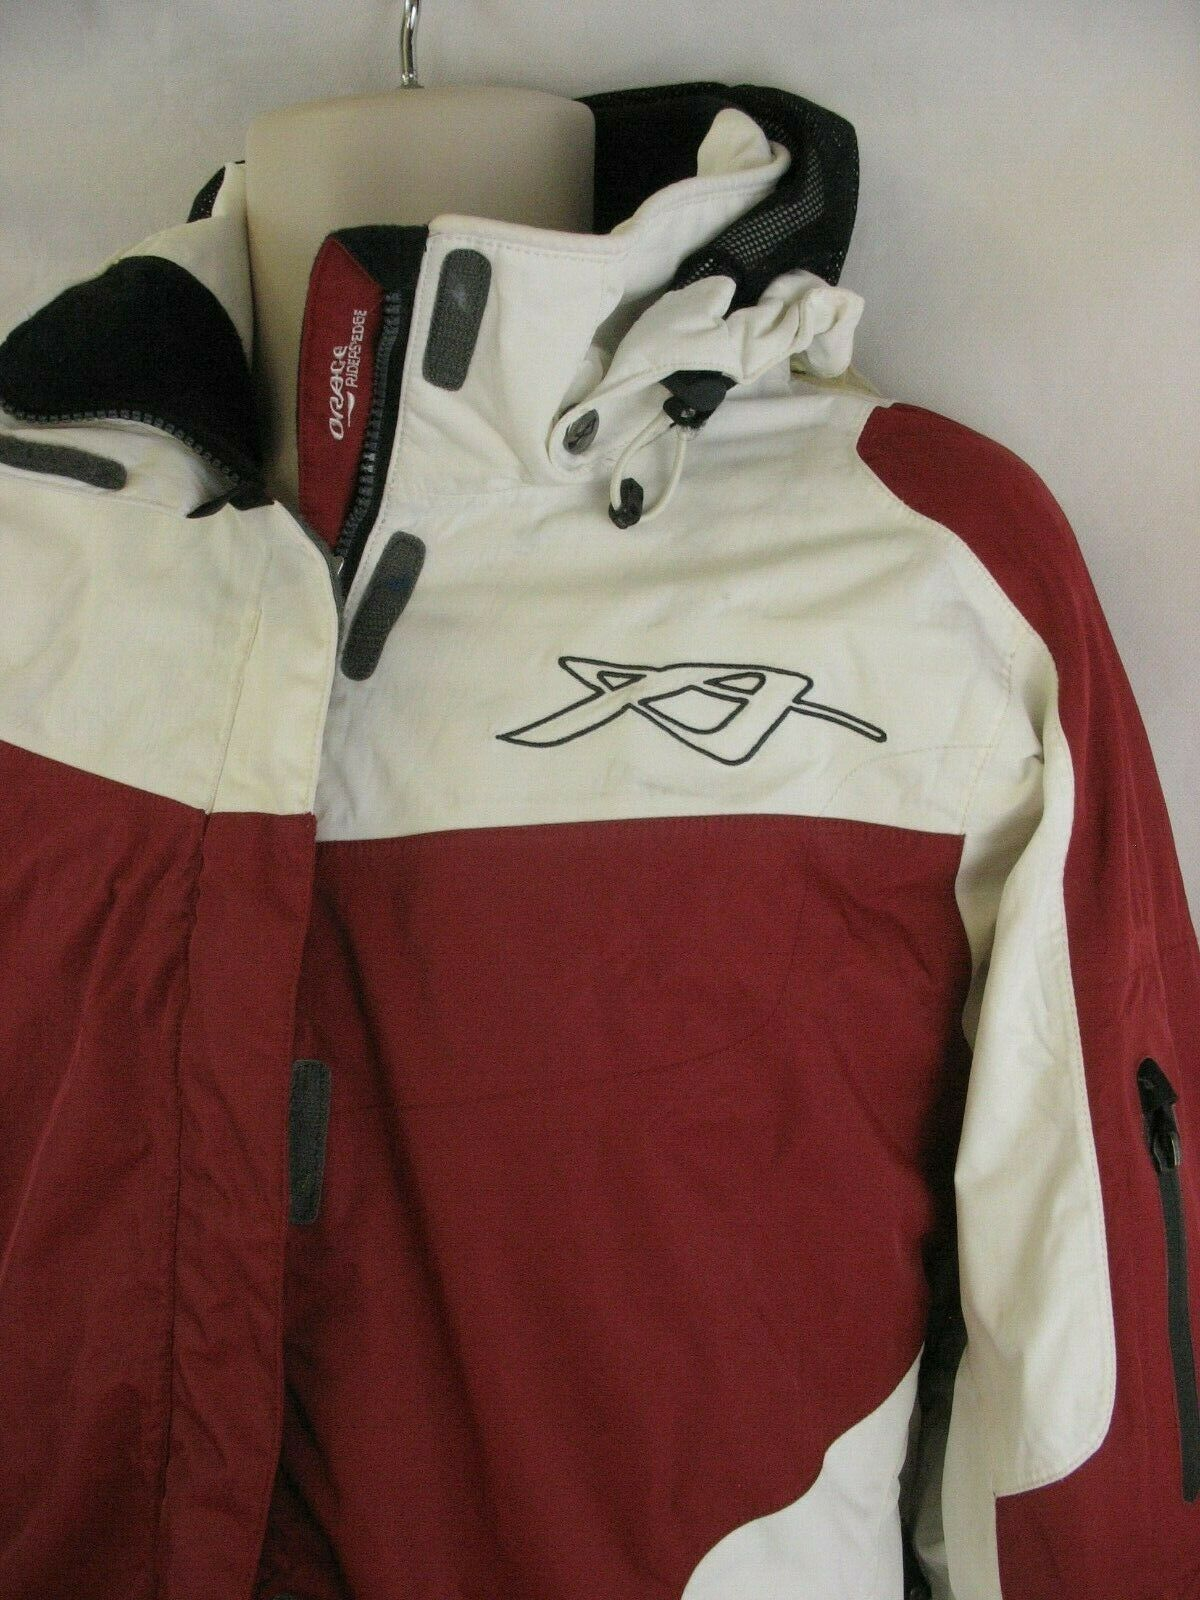 Orage Riders Edge Ski Snowboard Jacket Red White Black Enhance Vision Hood Large